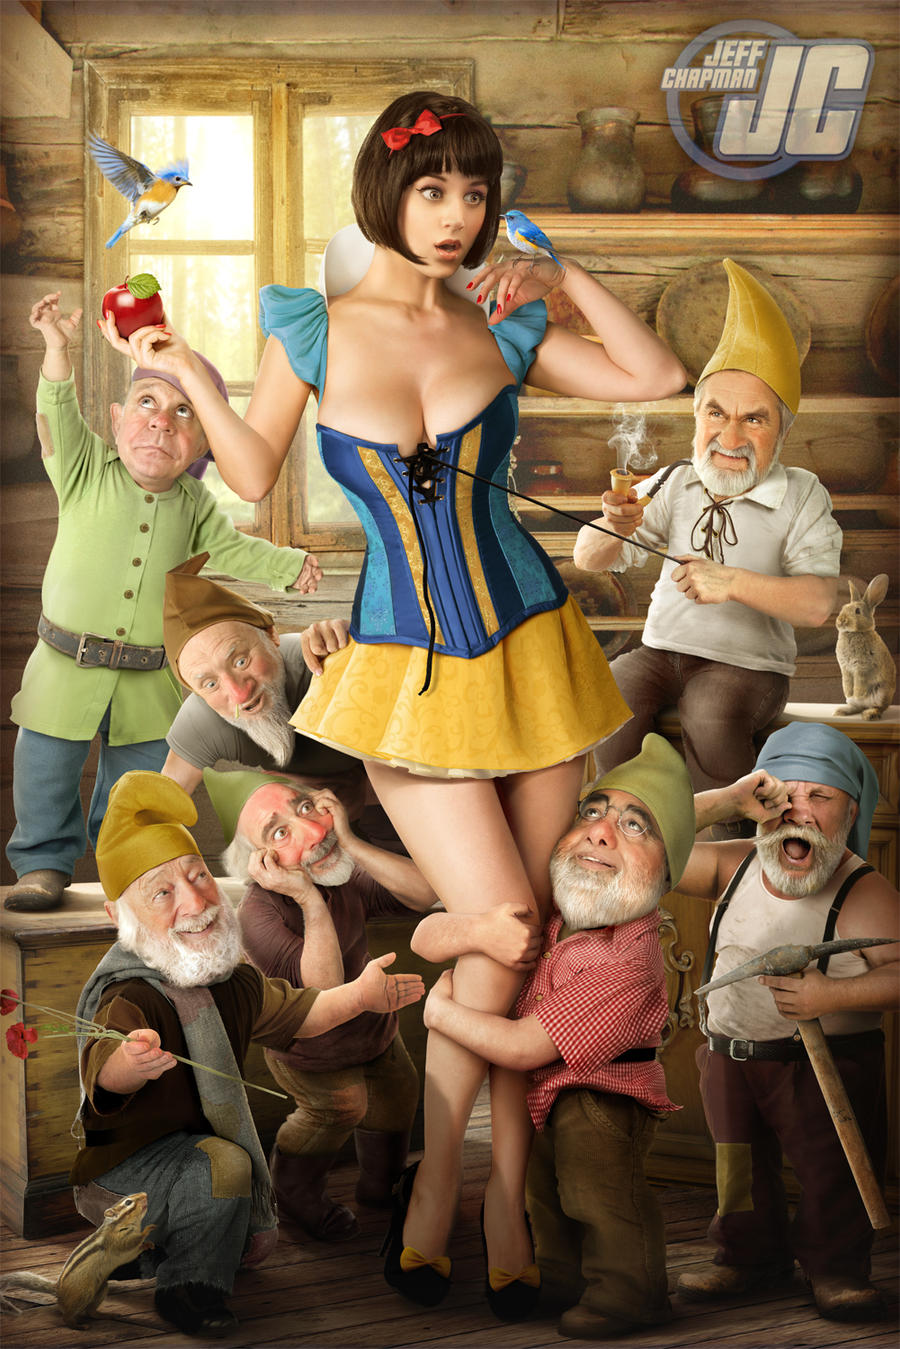 Snow white porno film